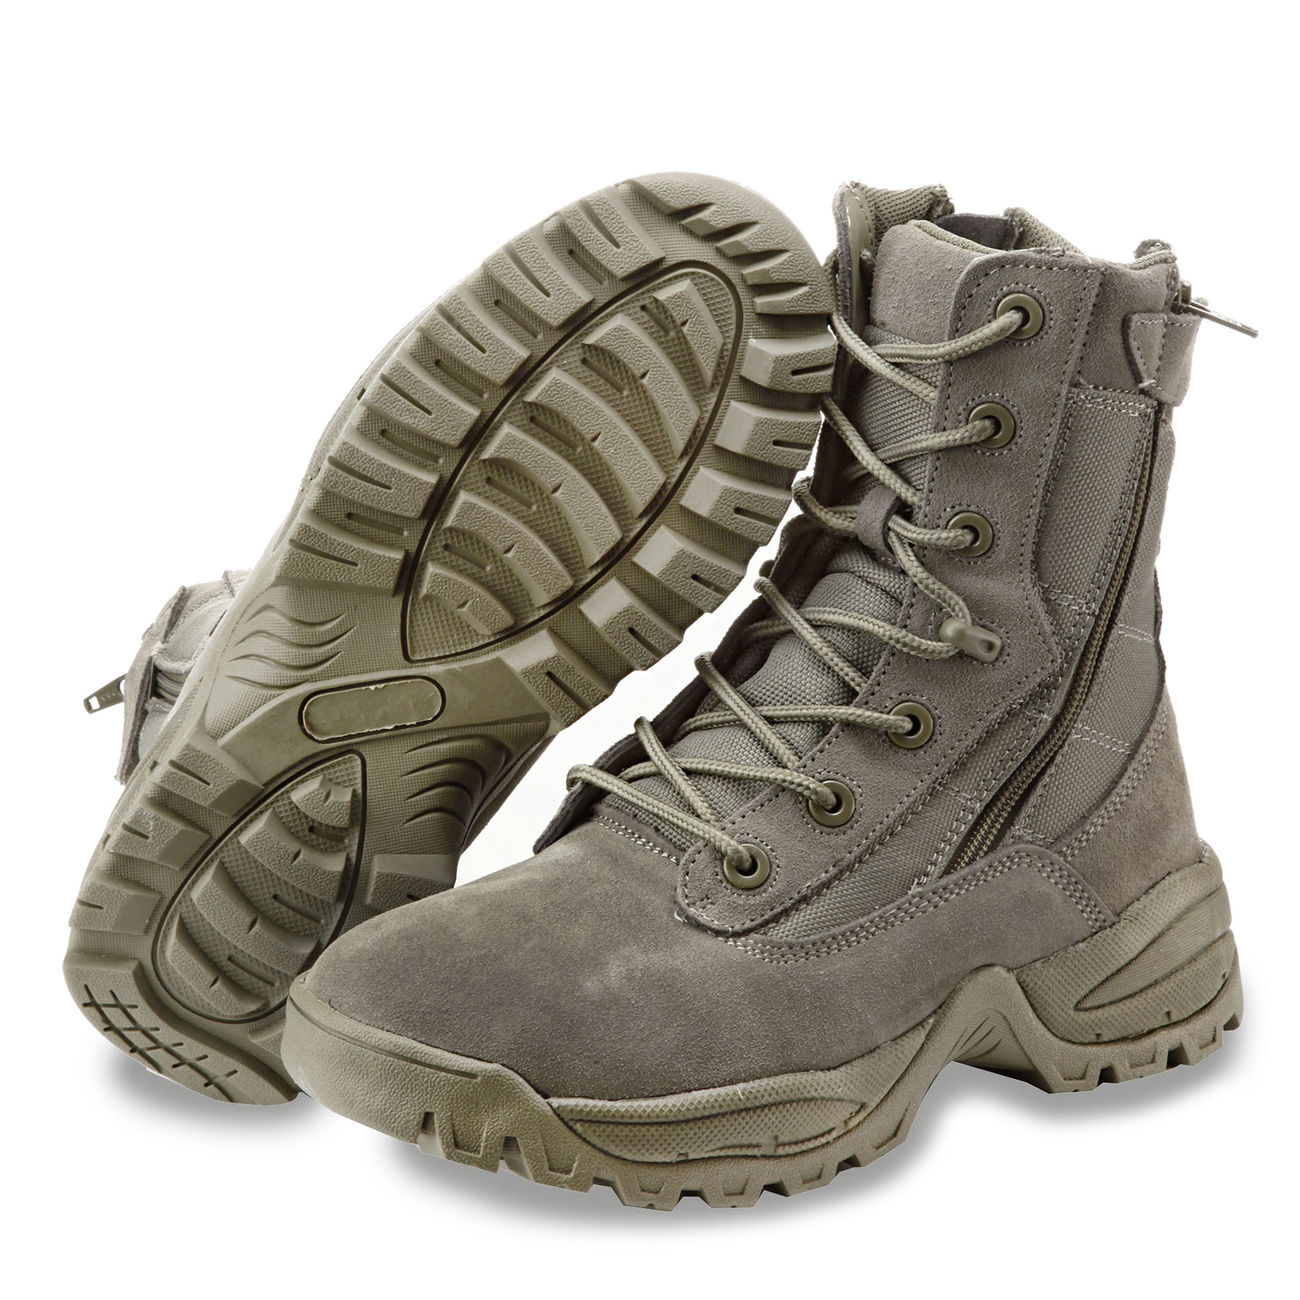 Mil-Tec Tactical Boot Two-Zip foliage 1